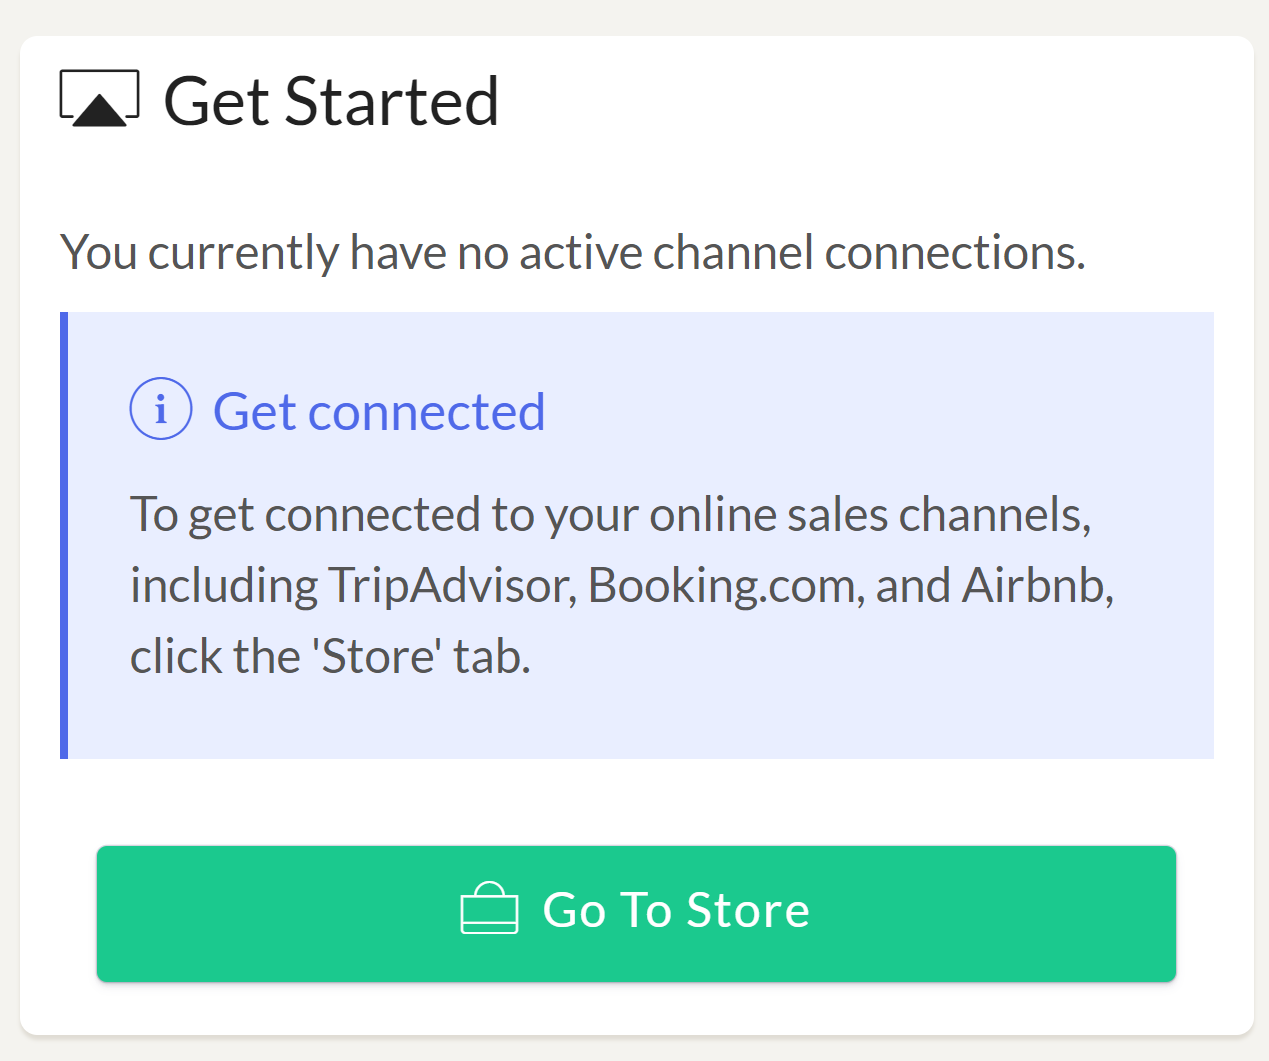 Connect to MyHotelCRS.com                  Setting up your channel connections with MyHotelCRS.com OTA Channel Manager OTA Connections